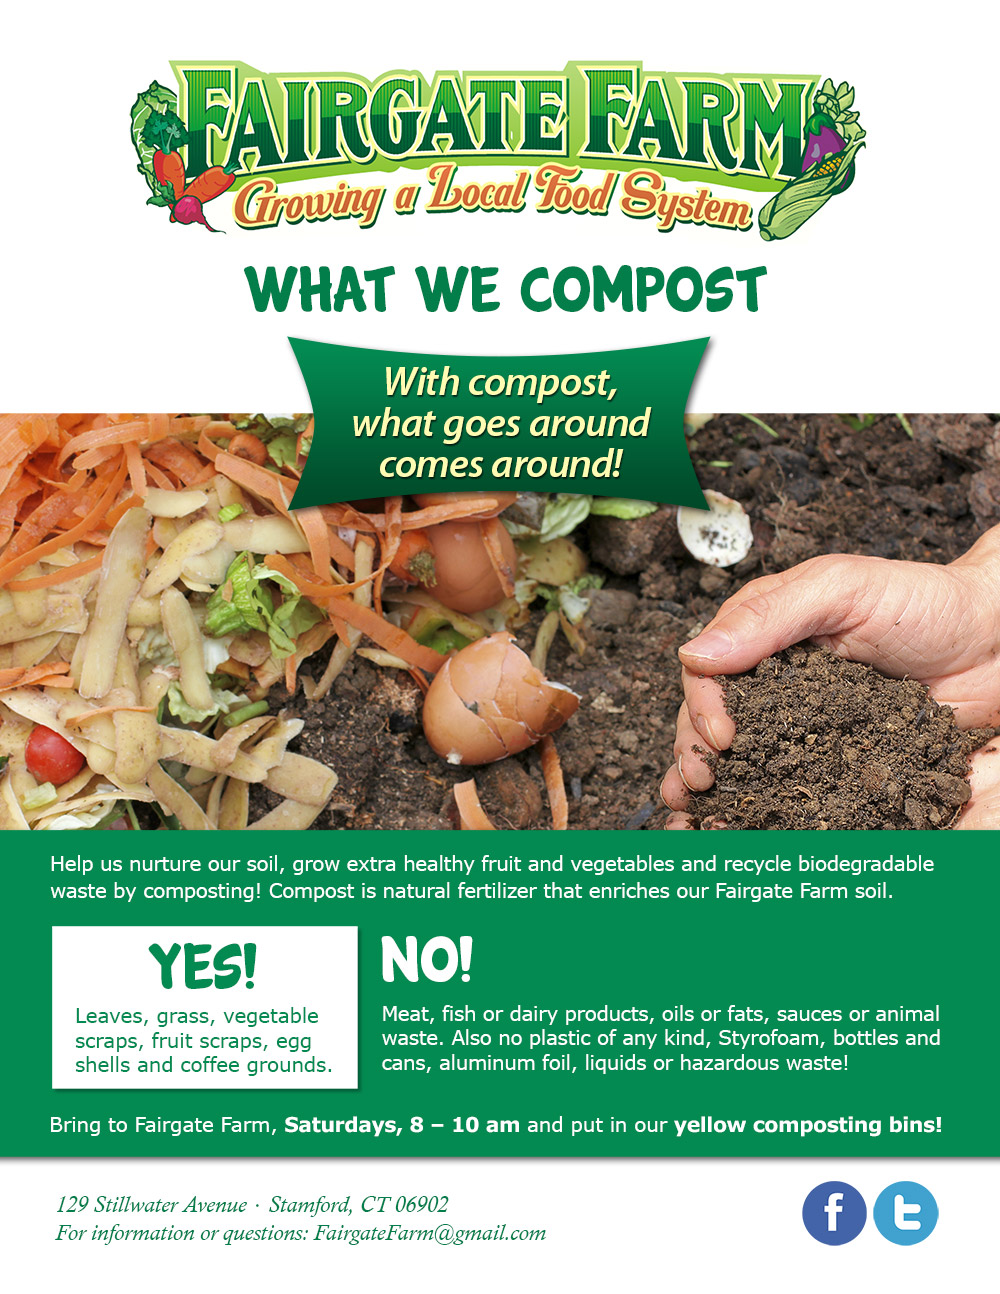 What we compost at Fairgate Farm